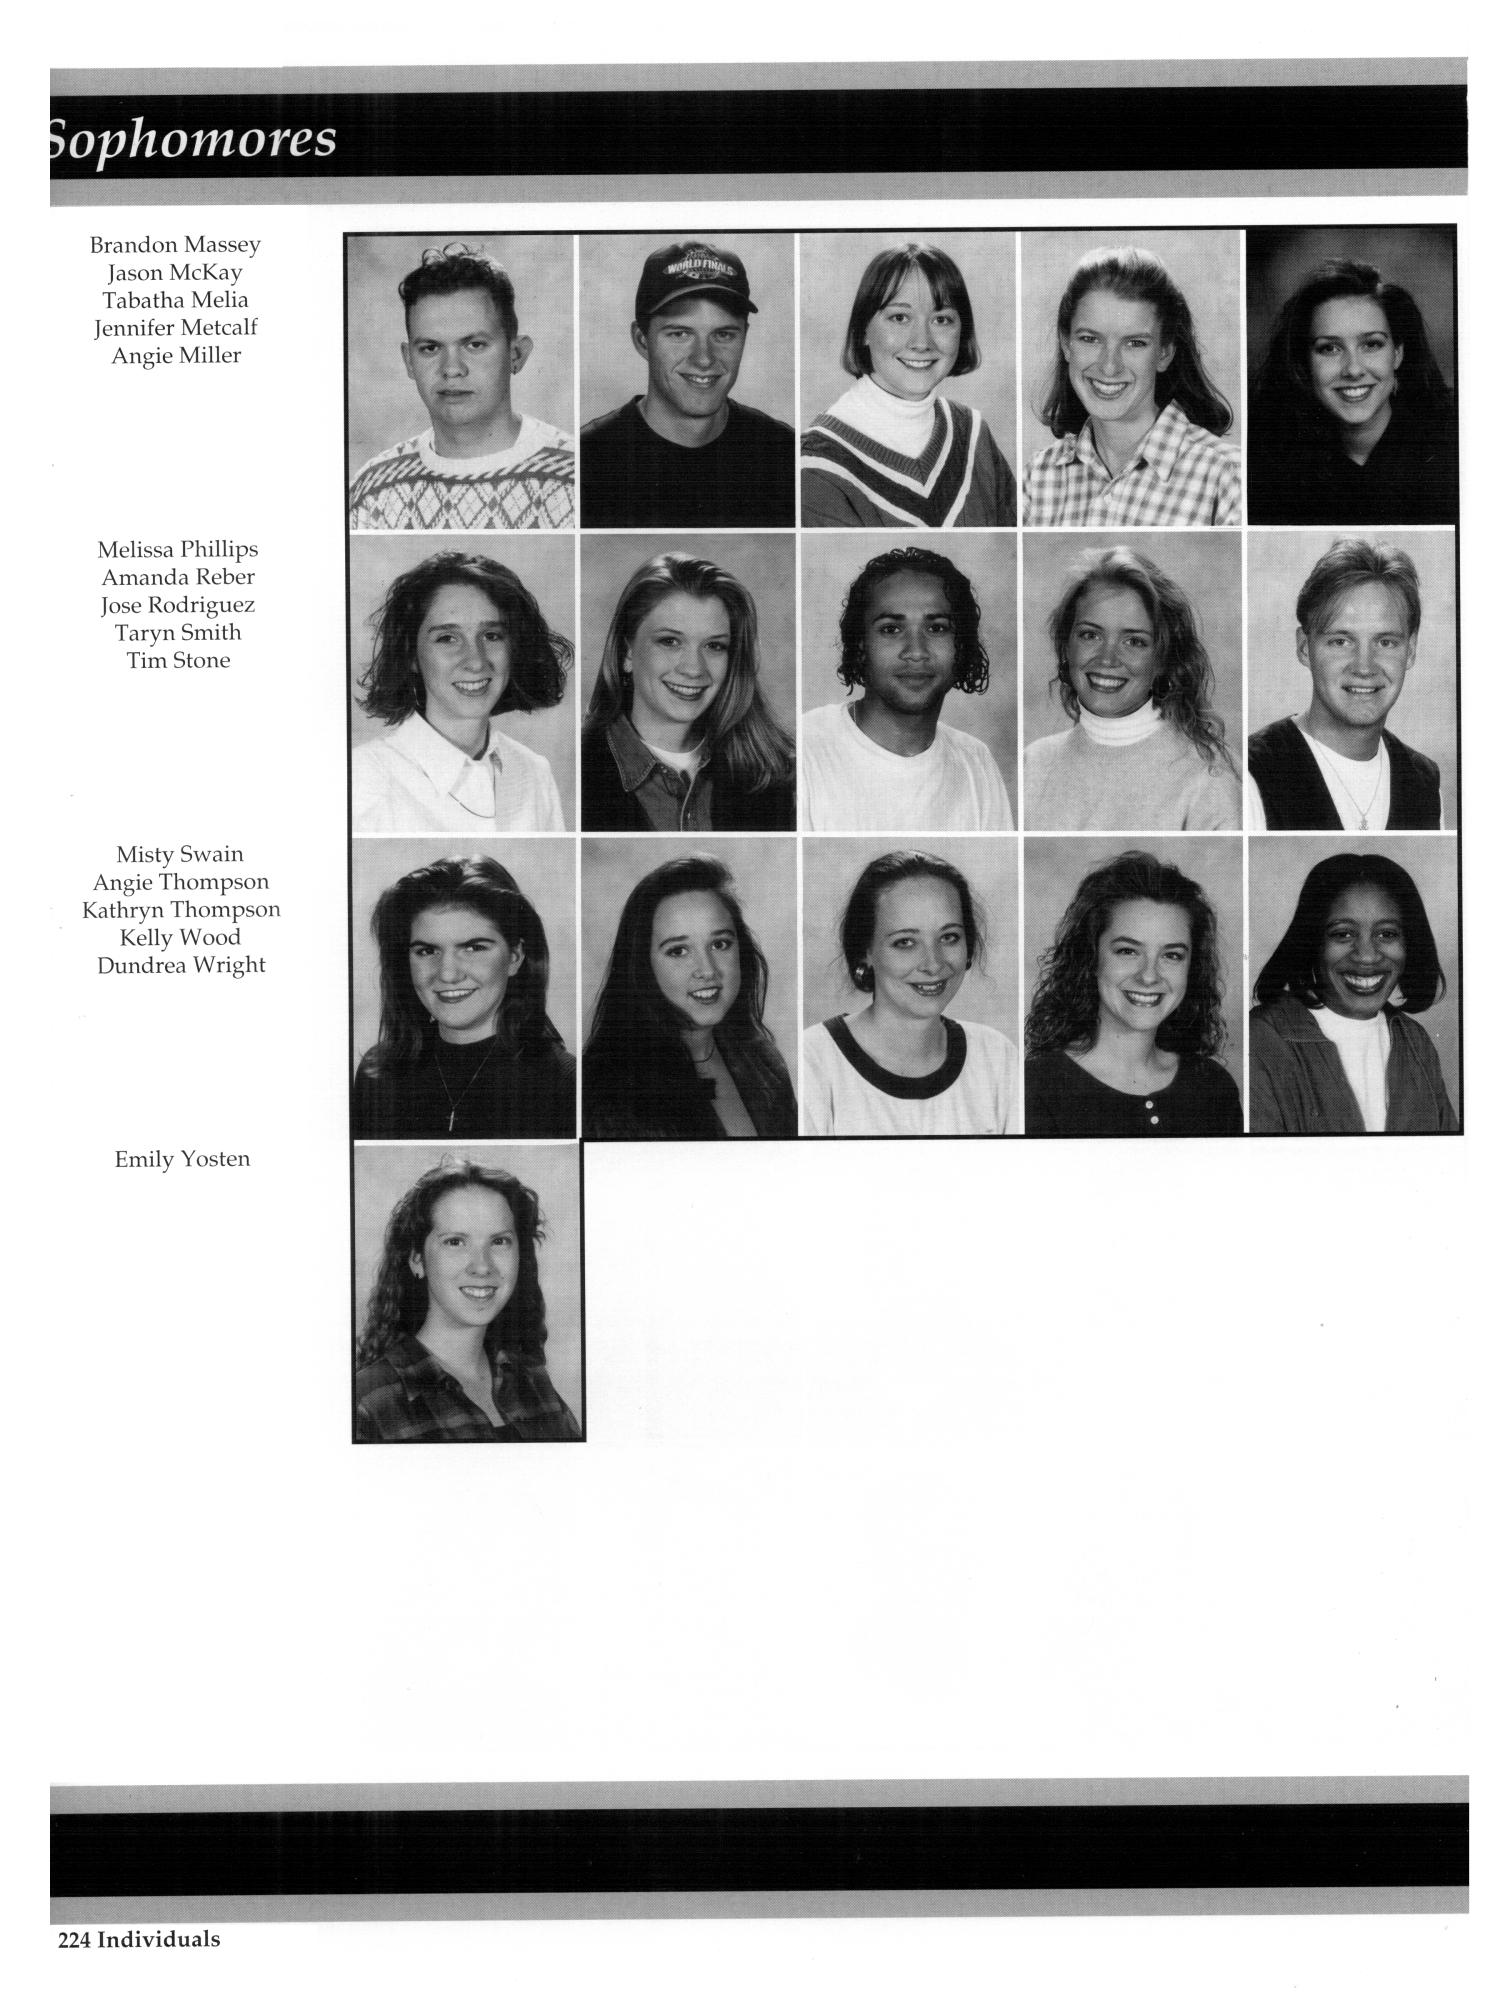 The aerie yearbook of university of north texas 1995 page 44 unt - The Aerie Yearbook Of University Of North Texas 1995 Page 224 Digital Library